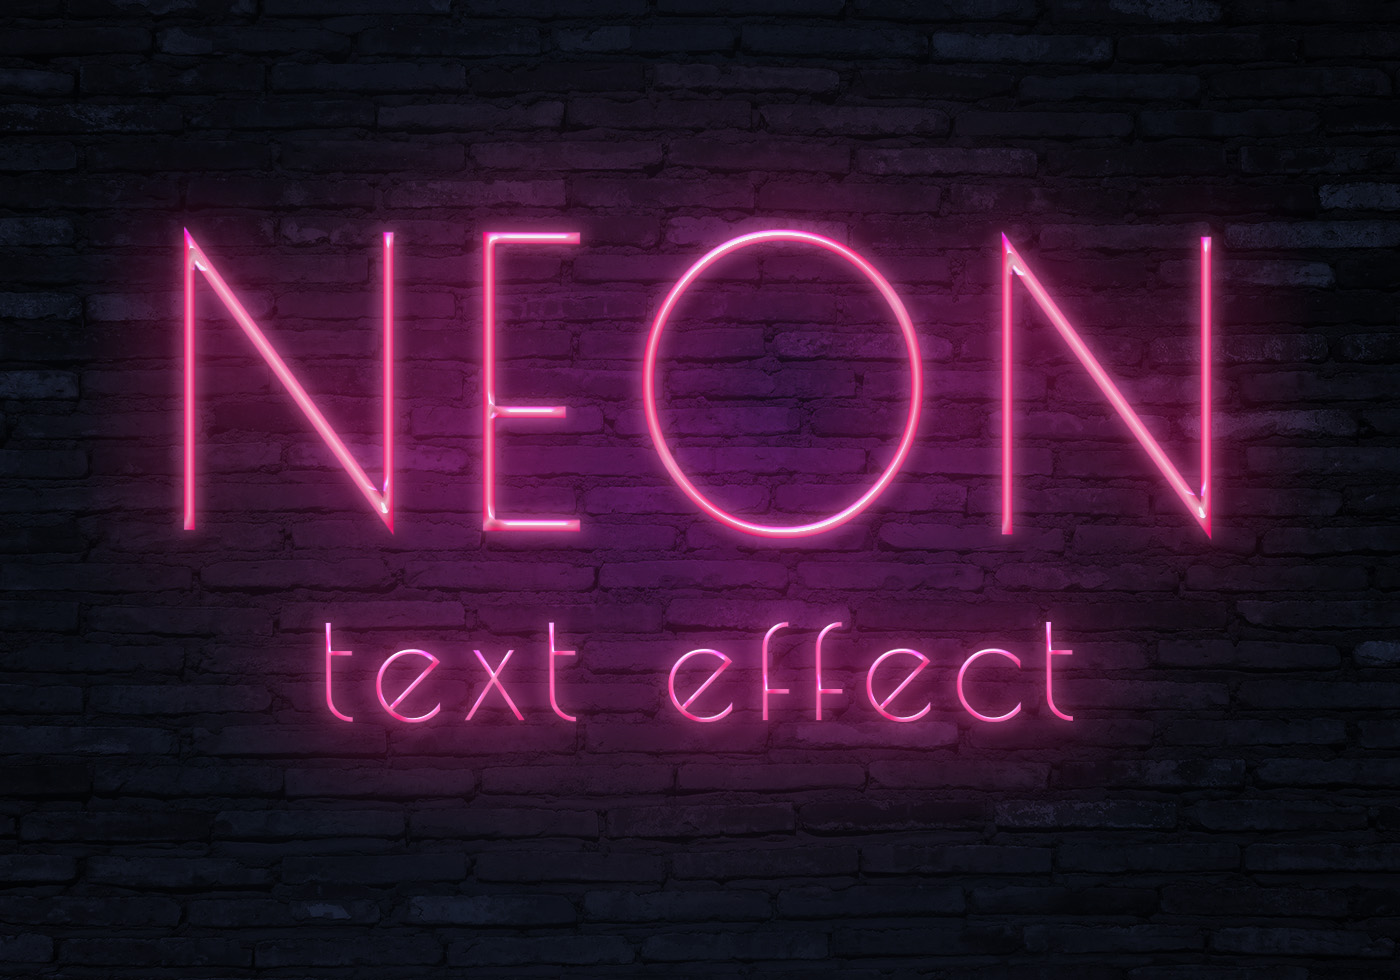 Neon text effect3 - Free Photoshop Brushes at Brusheezy!